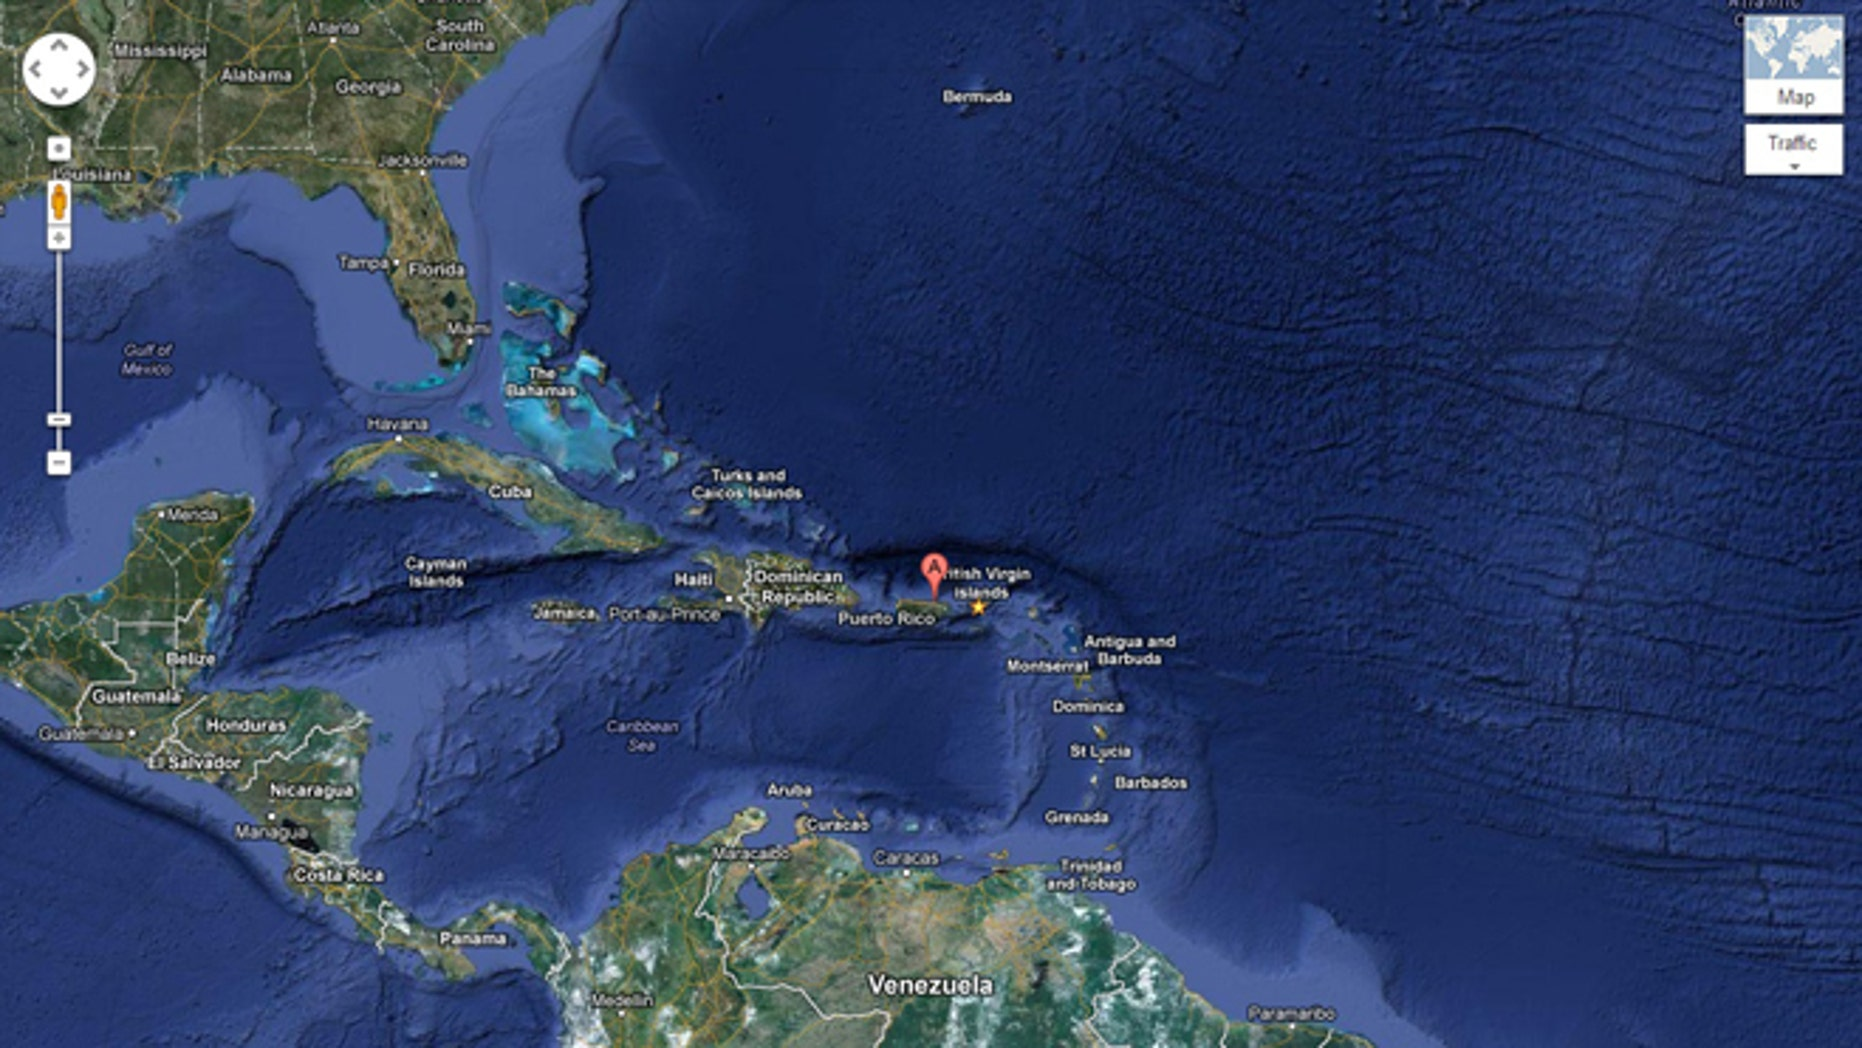 A Google Map locates San Juan, Puerto Rico, where an unusual site has caught the public's eye: a lone male bottlenose dolphin cavorting in the waters.